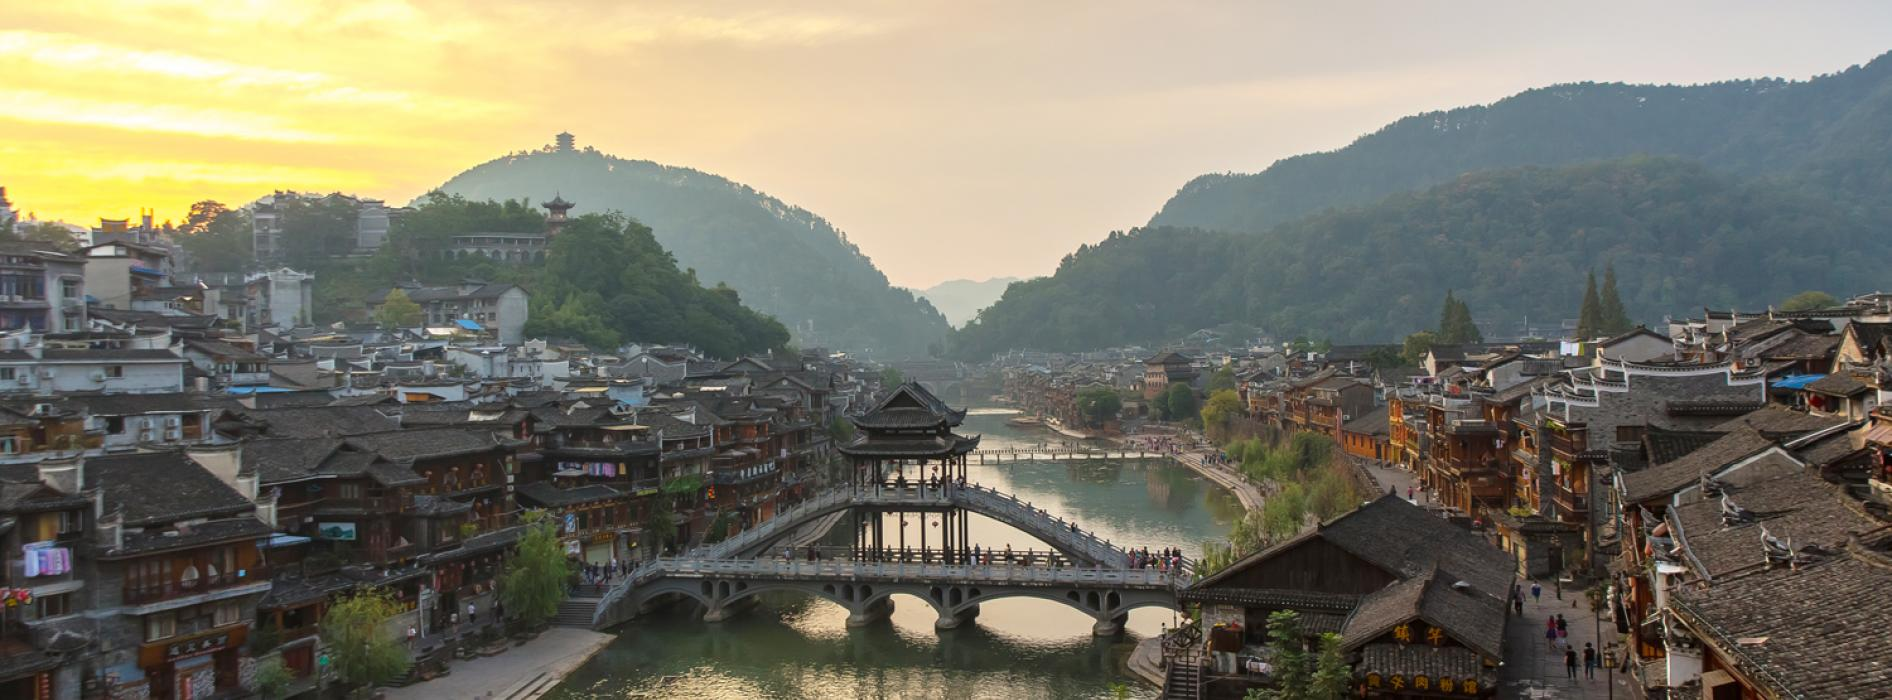 fenghuang day time.jpg